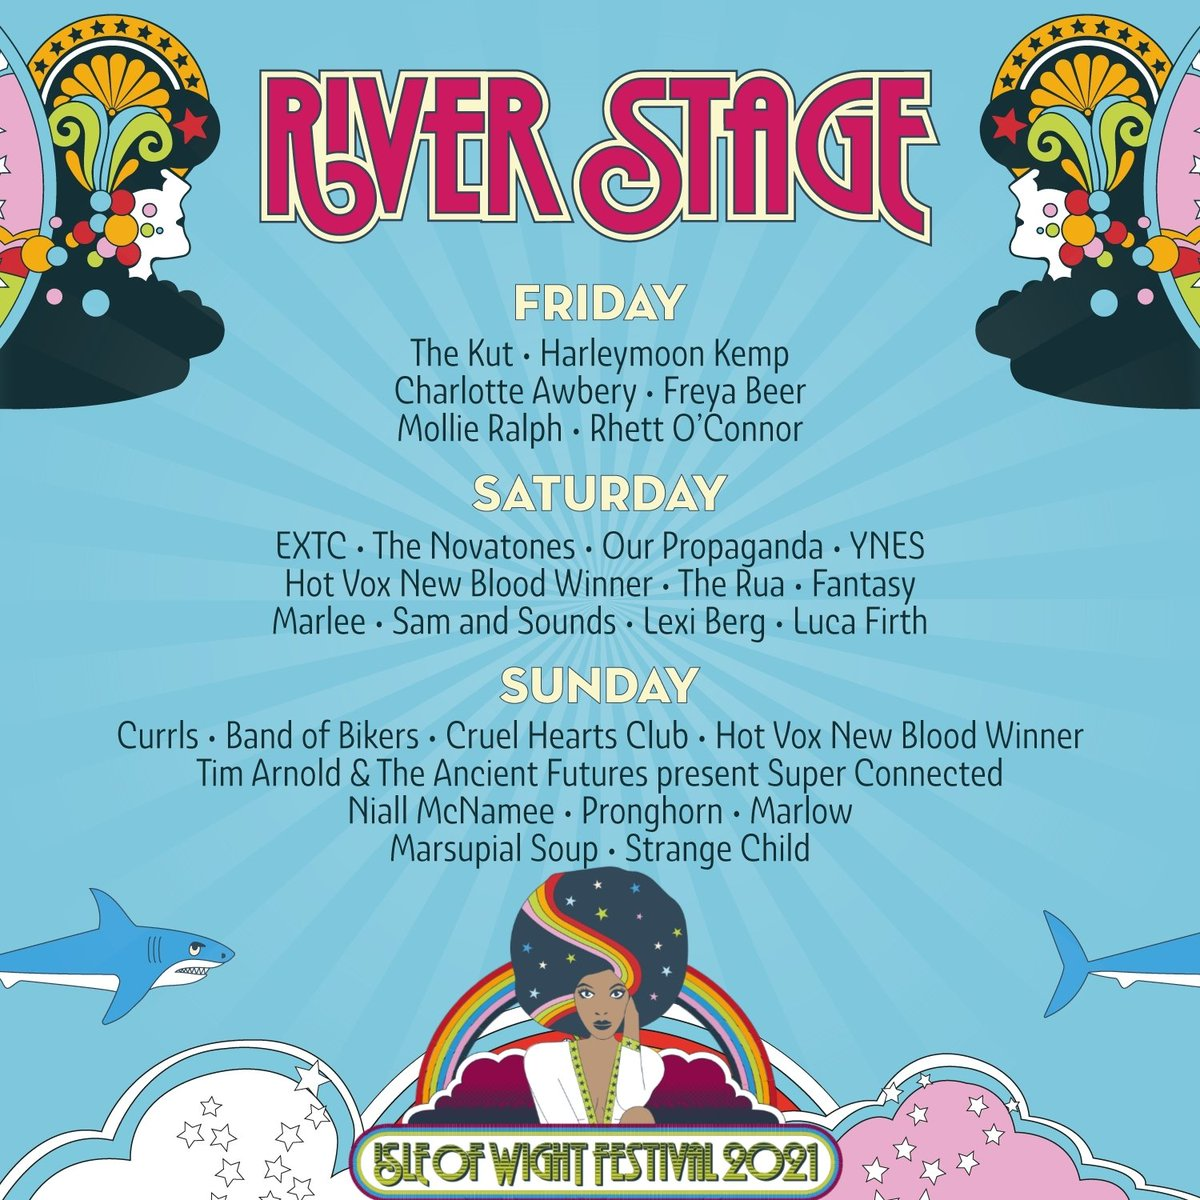 And set number 2 at Isle of Wight Festival   Our spiritual home at the festival under the new name of the River stage where we made our name. Year on year the numbers have grown to unbelievable levels.  Much love  The Novas are back #IOW2021  #cinchxIOW #shitfacedinafield